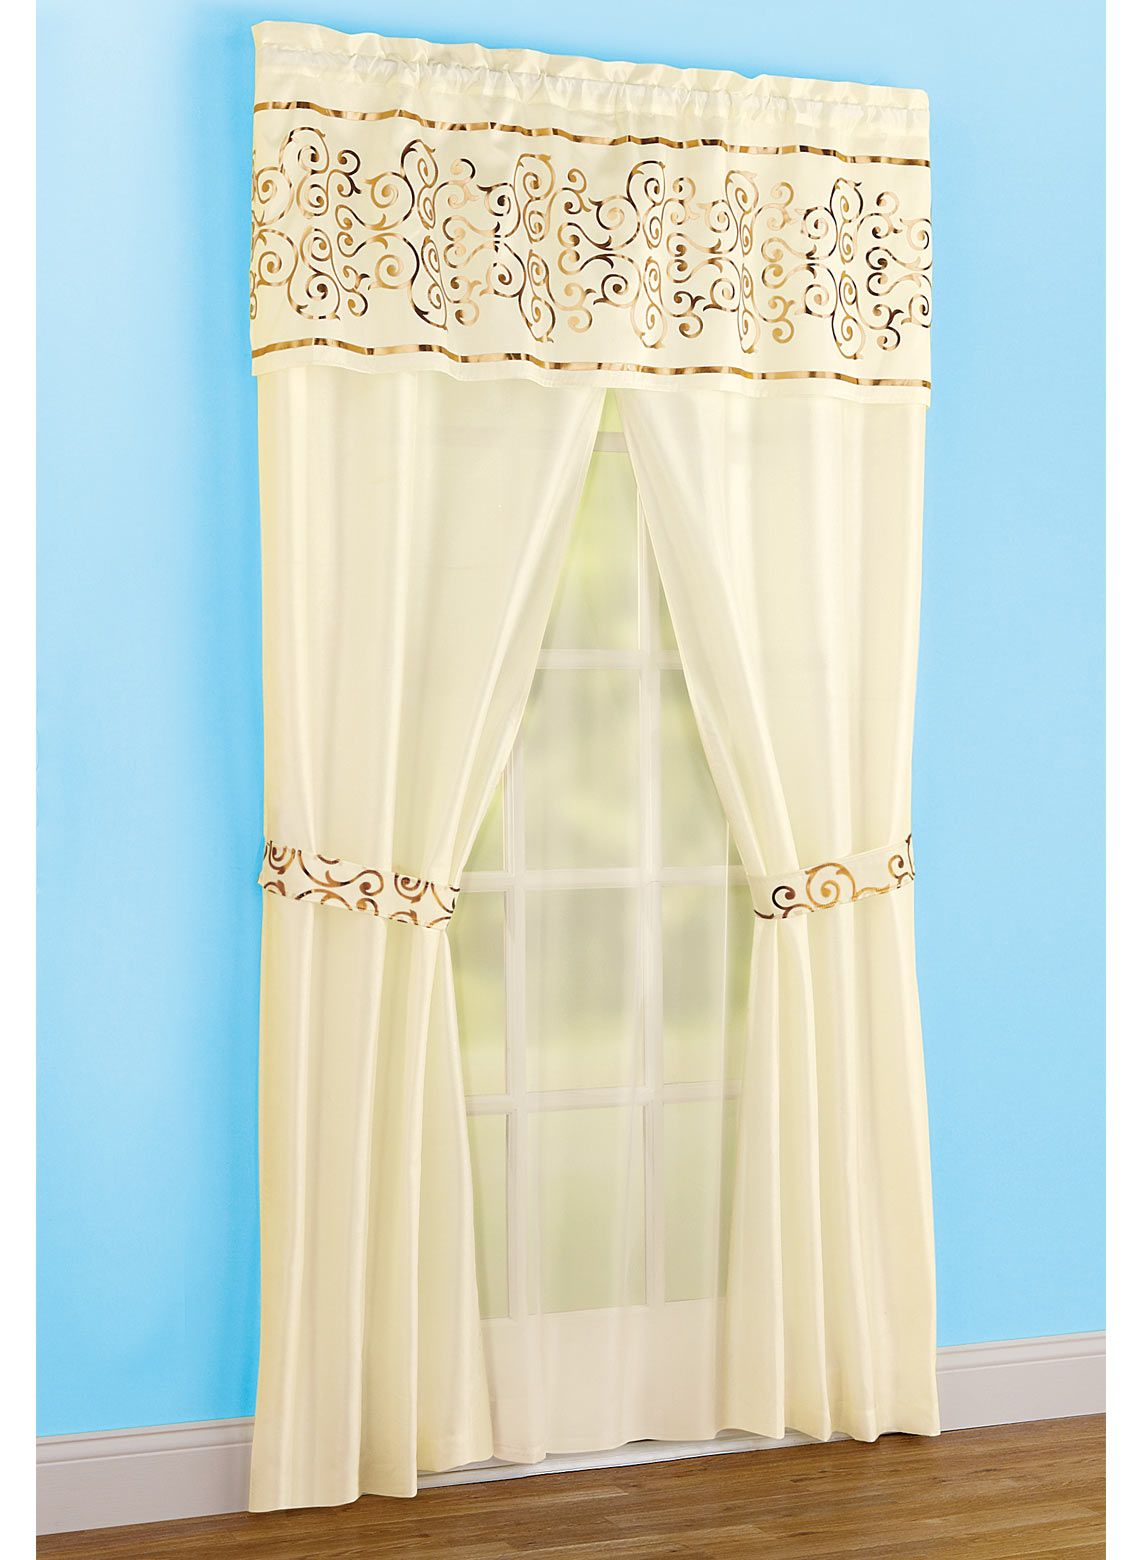 All In One Curtain Set Curtains Curtain Sets Home Decor